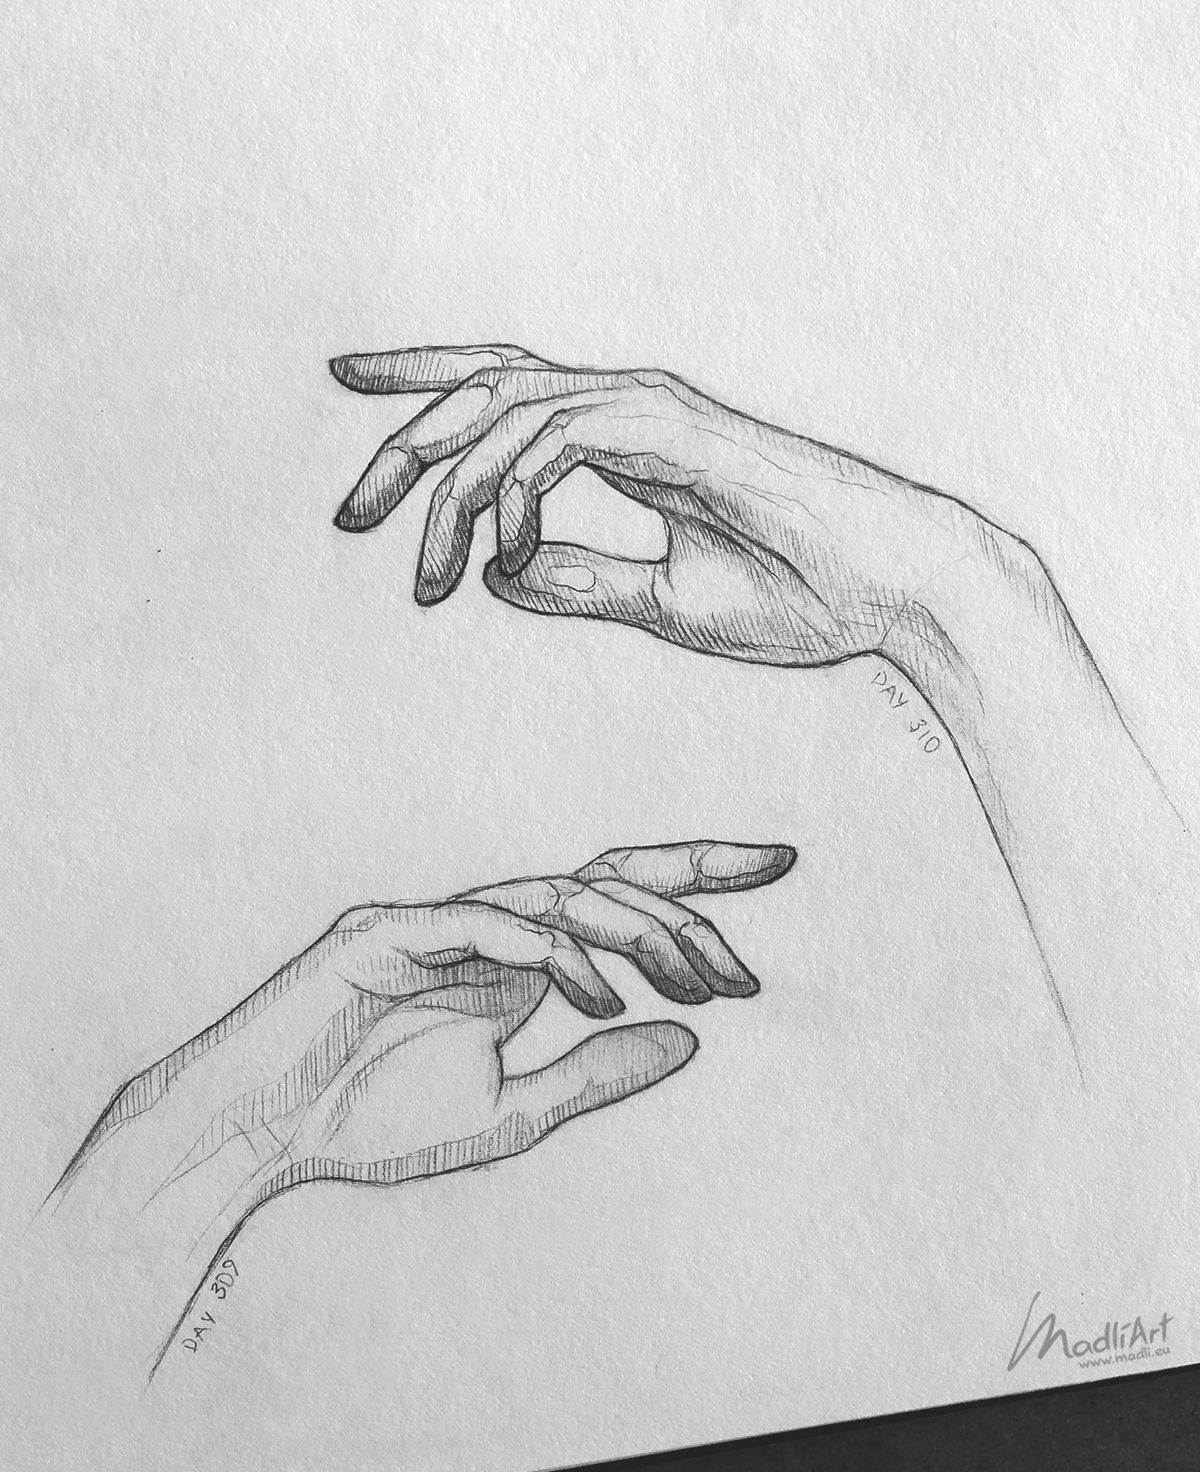 Sketchbook drawing of hands close up i pencil art idea i hand pose drawing realistic sketch anatomy study reference i madliart www madli eu